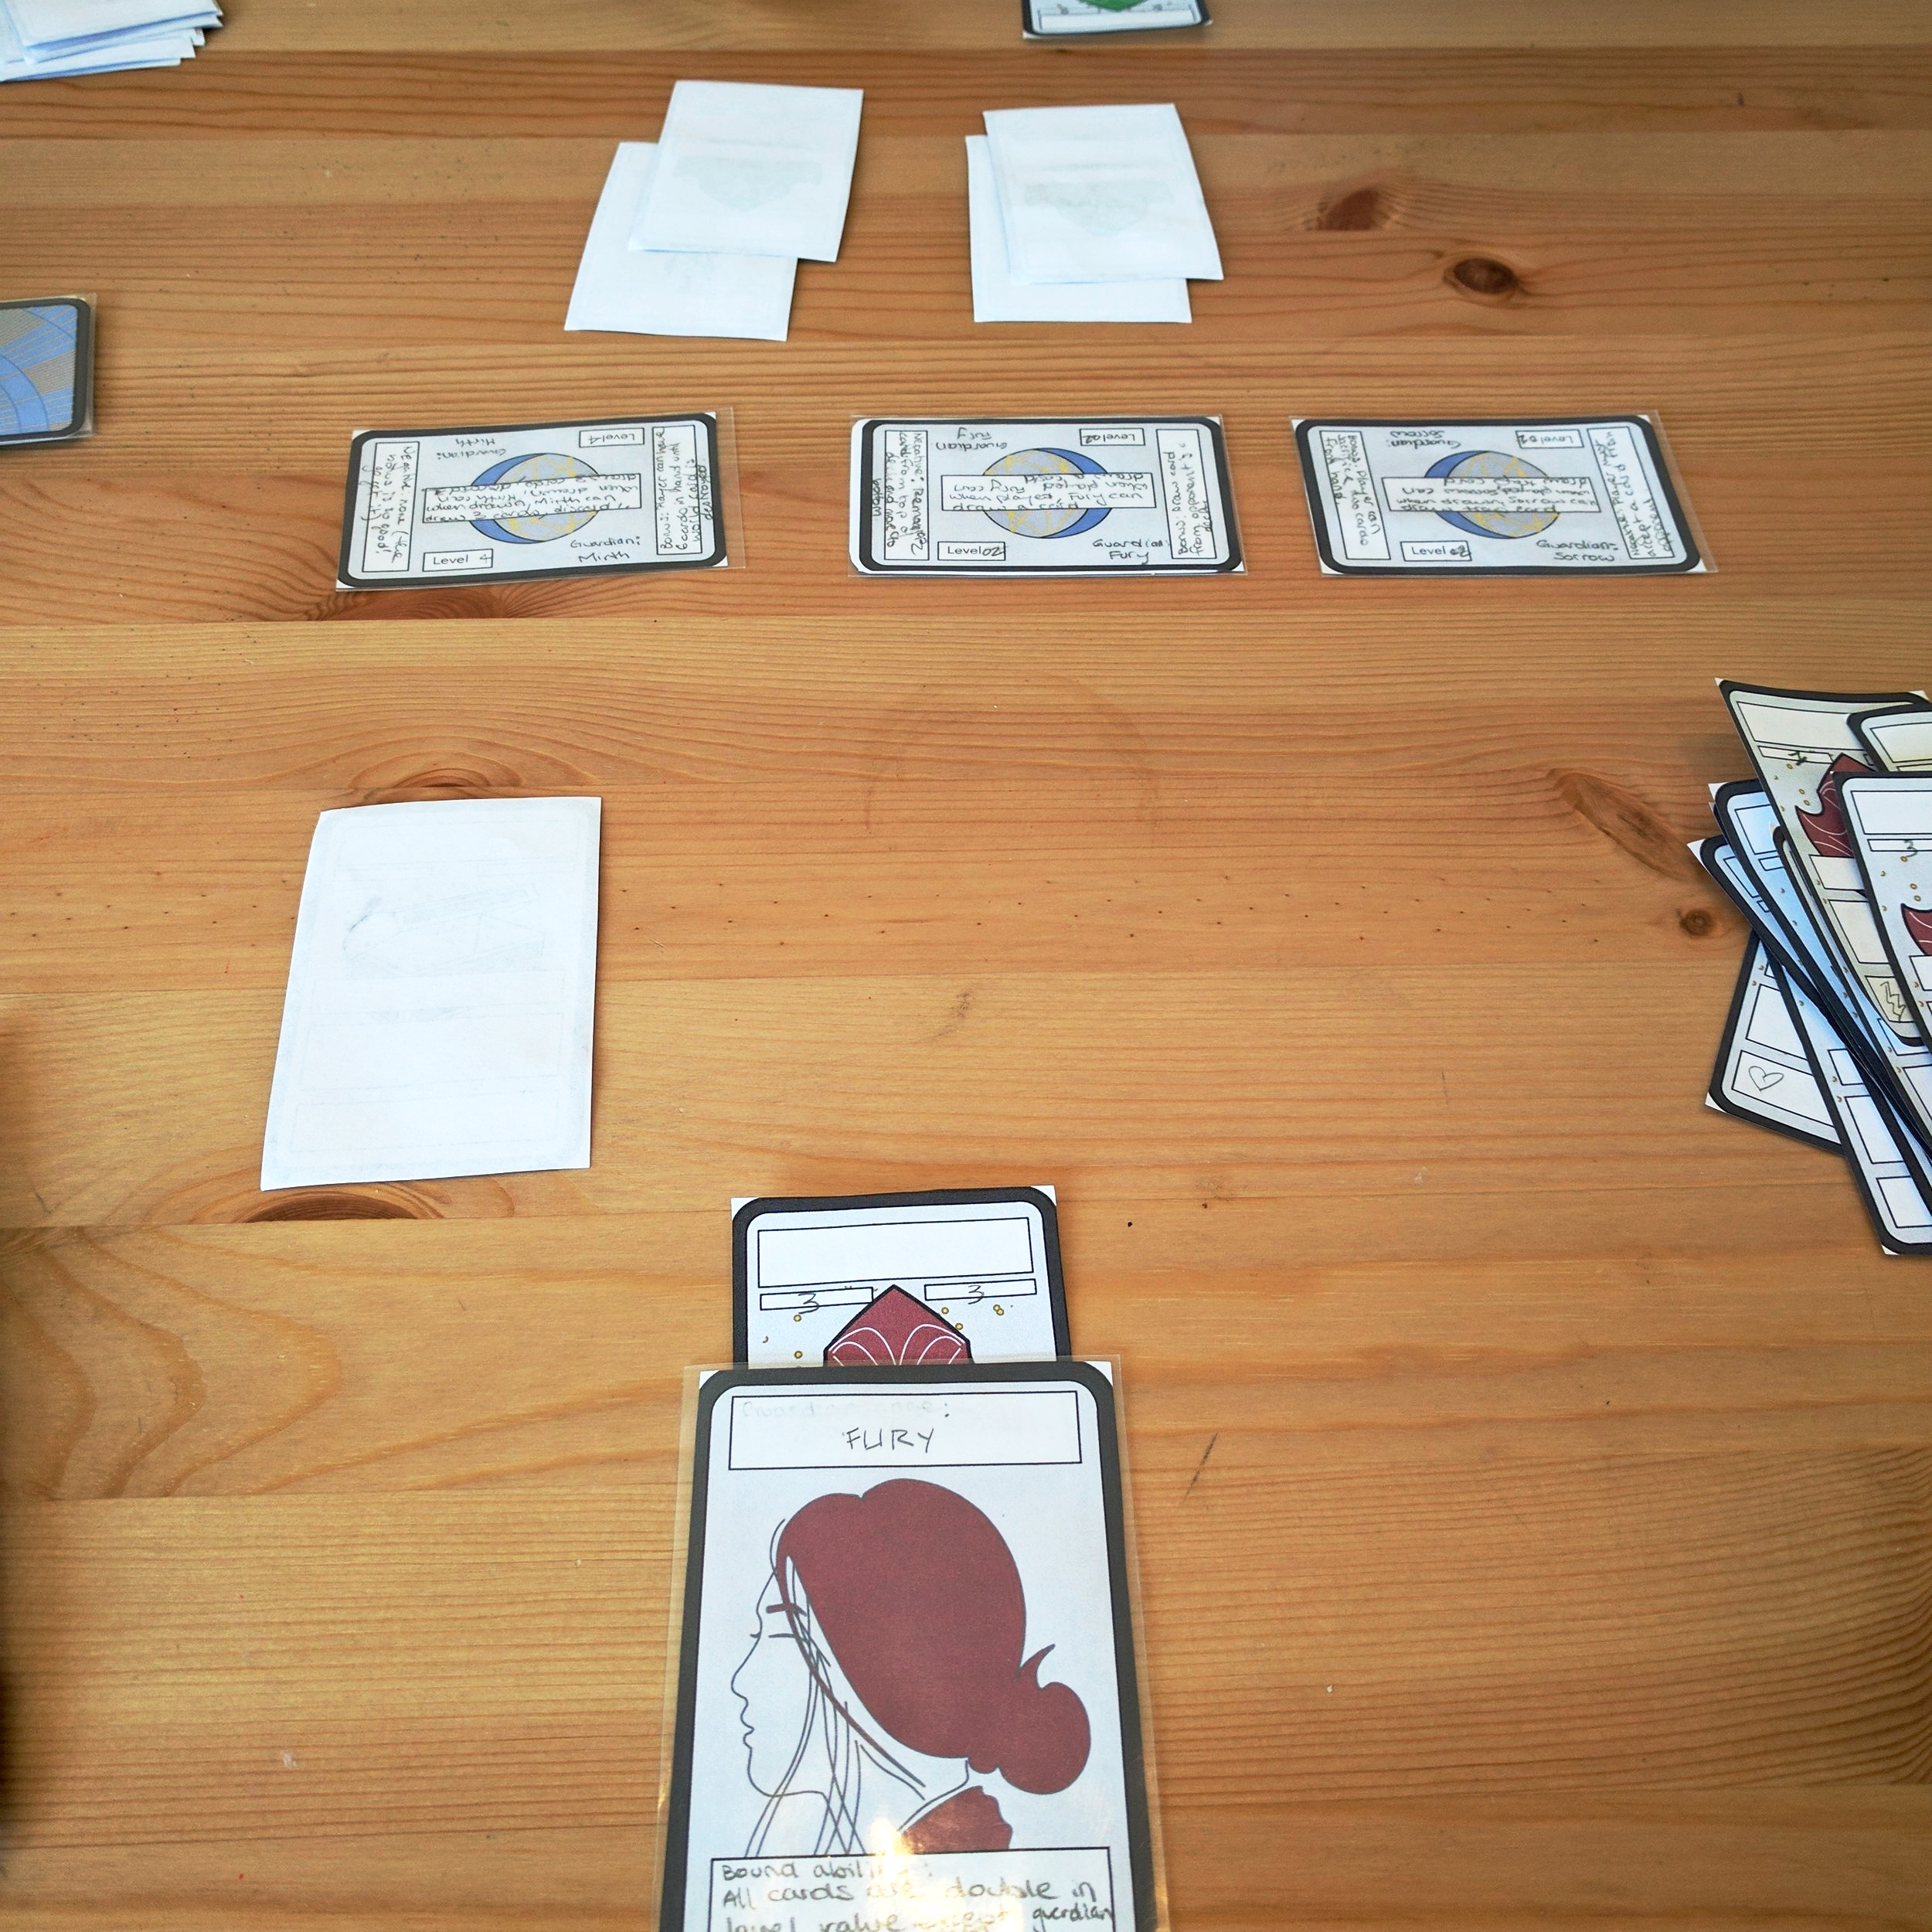 Duration of Play: - The game itself takes approximately 15-25 minutes to complete. A match between well balanced, experienced players could take up to 35 minutes.This game connects players aesthetically and strategically. It allows for a long-term feeling of attachment as players build a stronger, better deck with each new publication of cards.